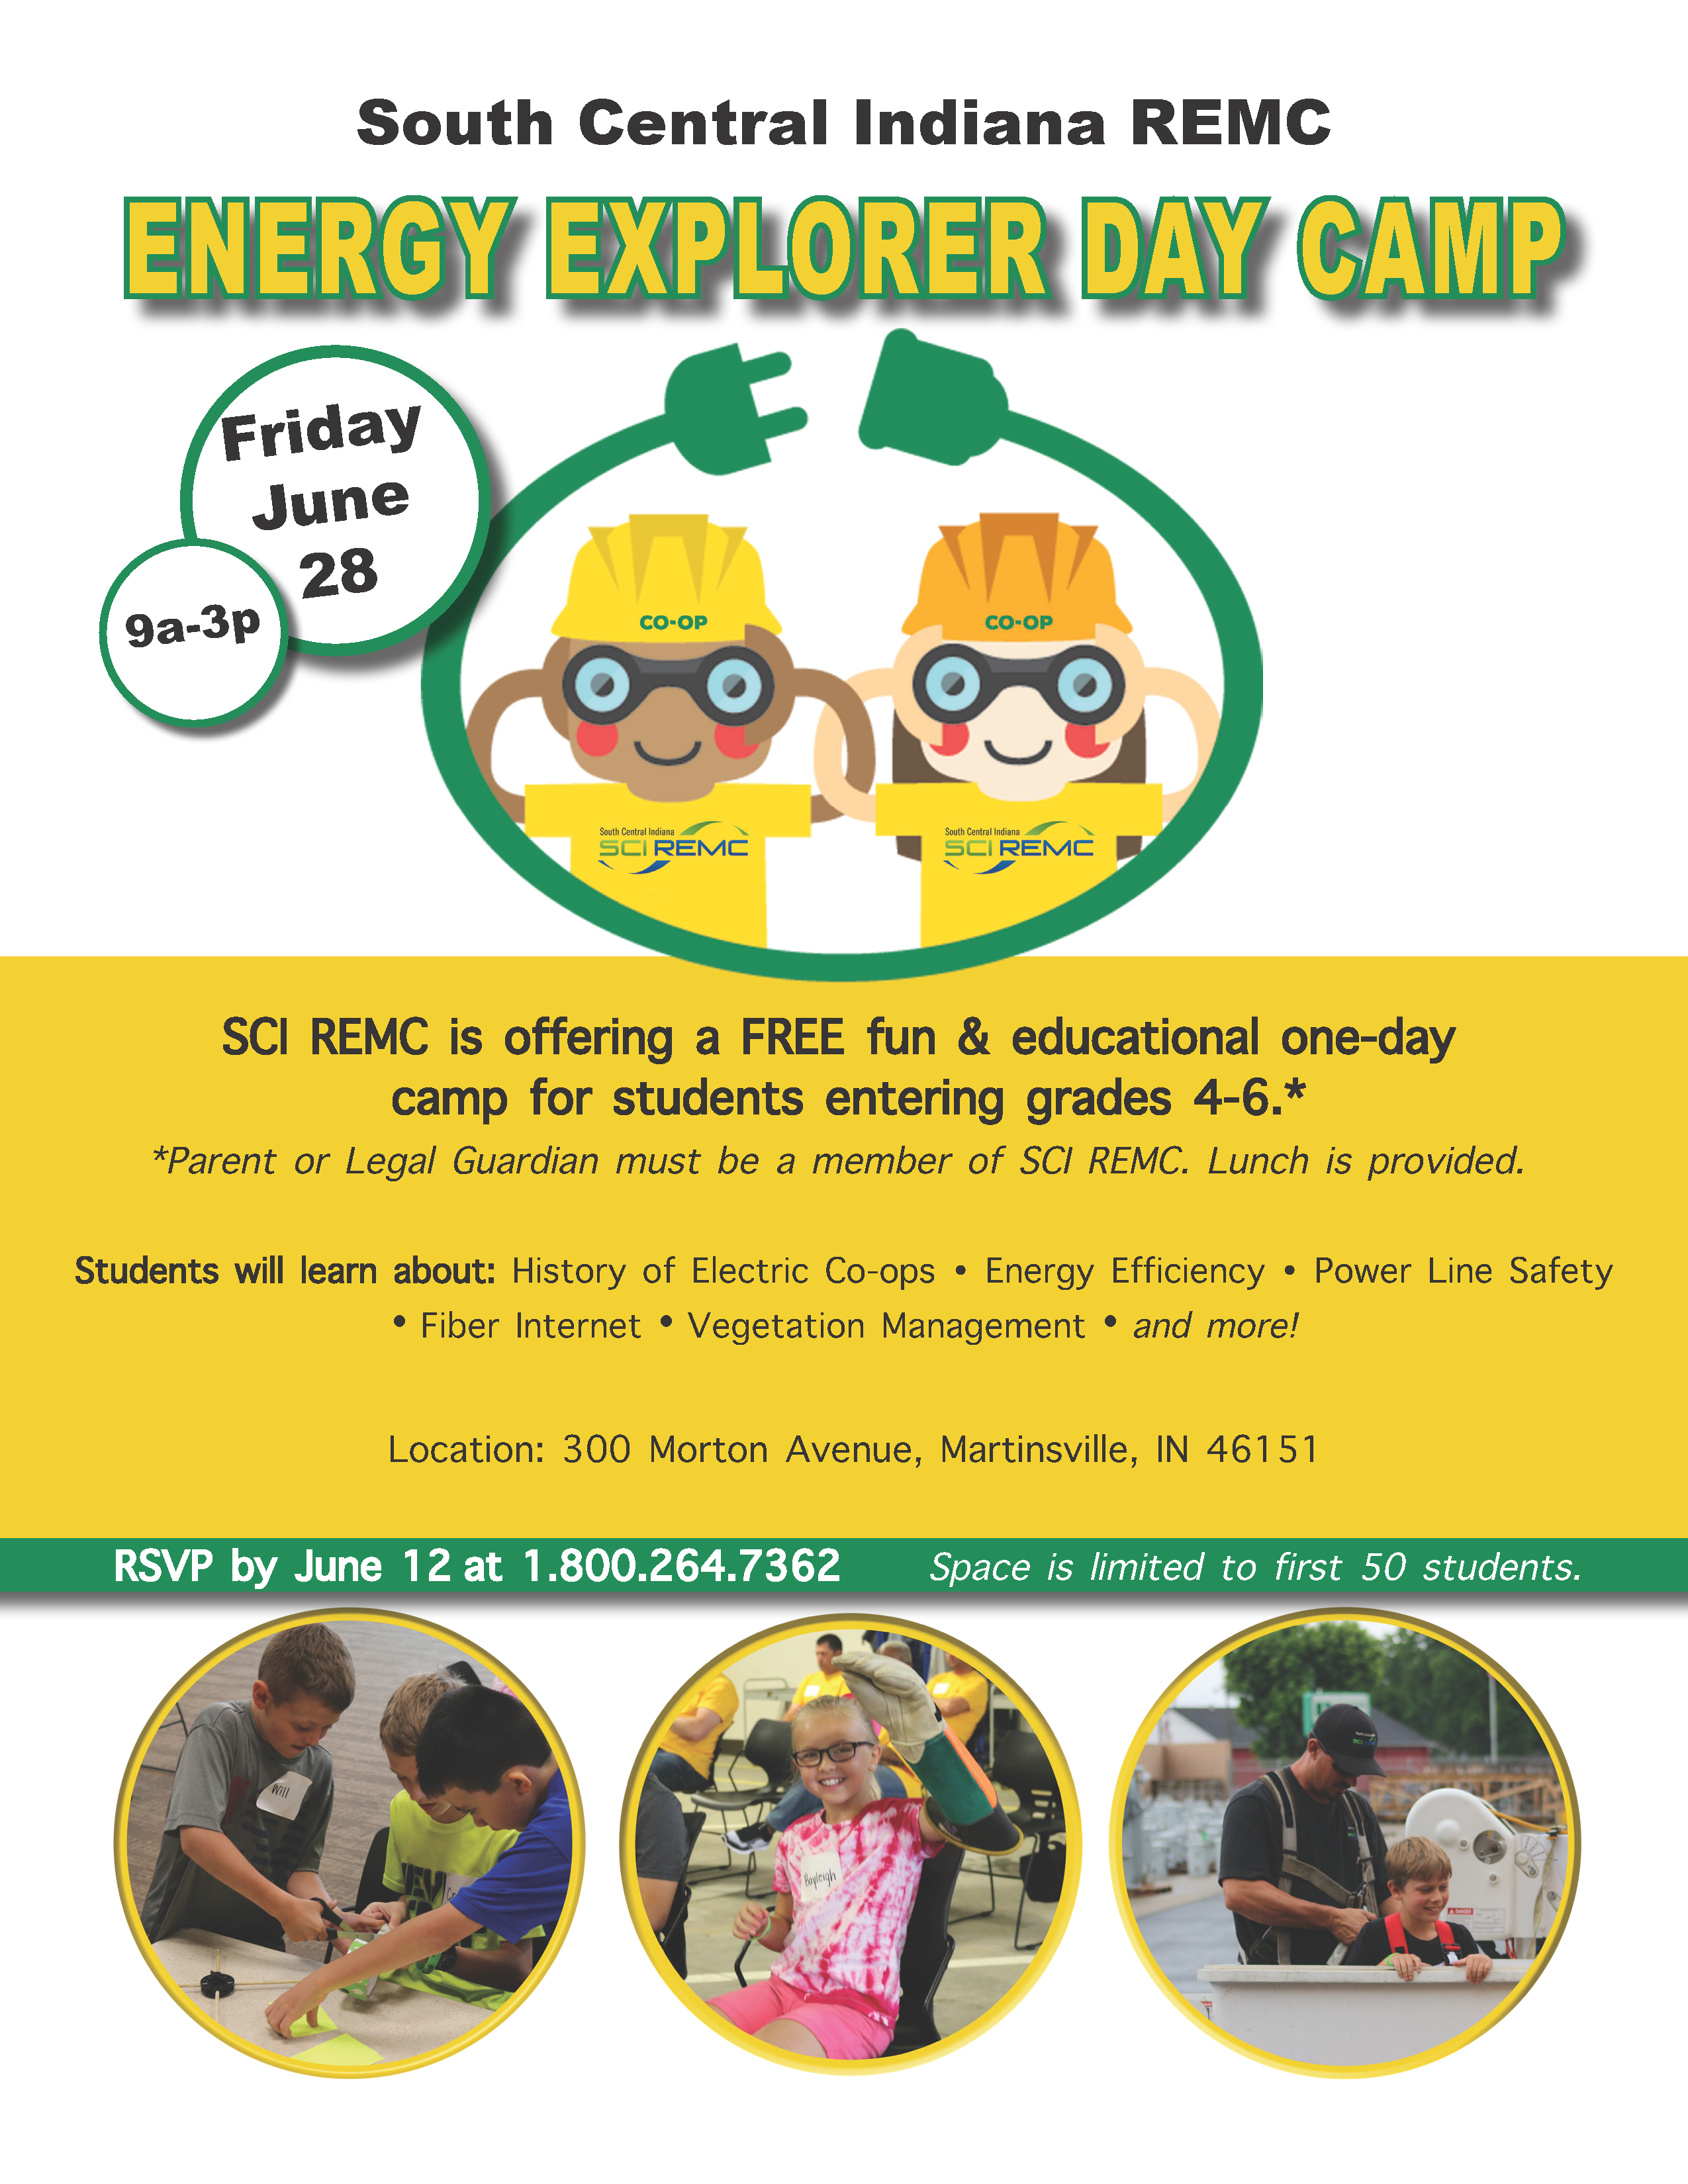 energy%20explorers%20day%20camp%2019.png